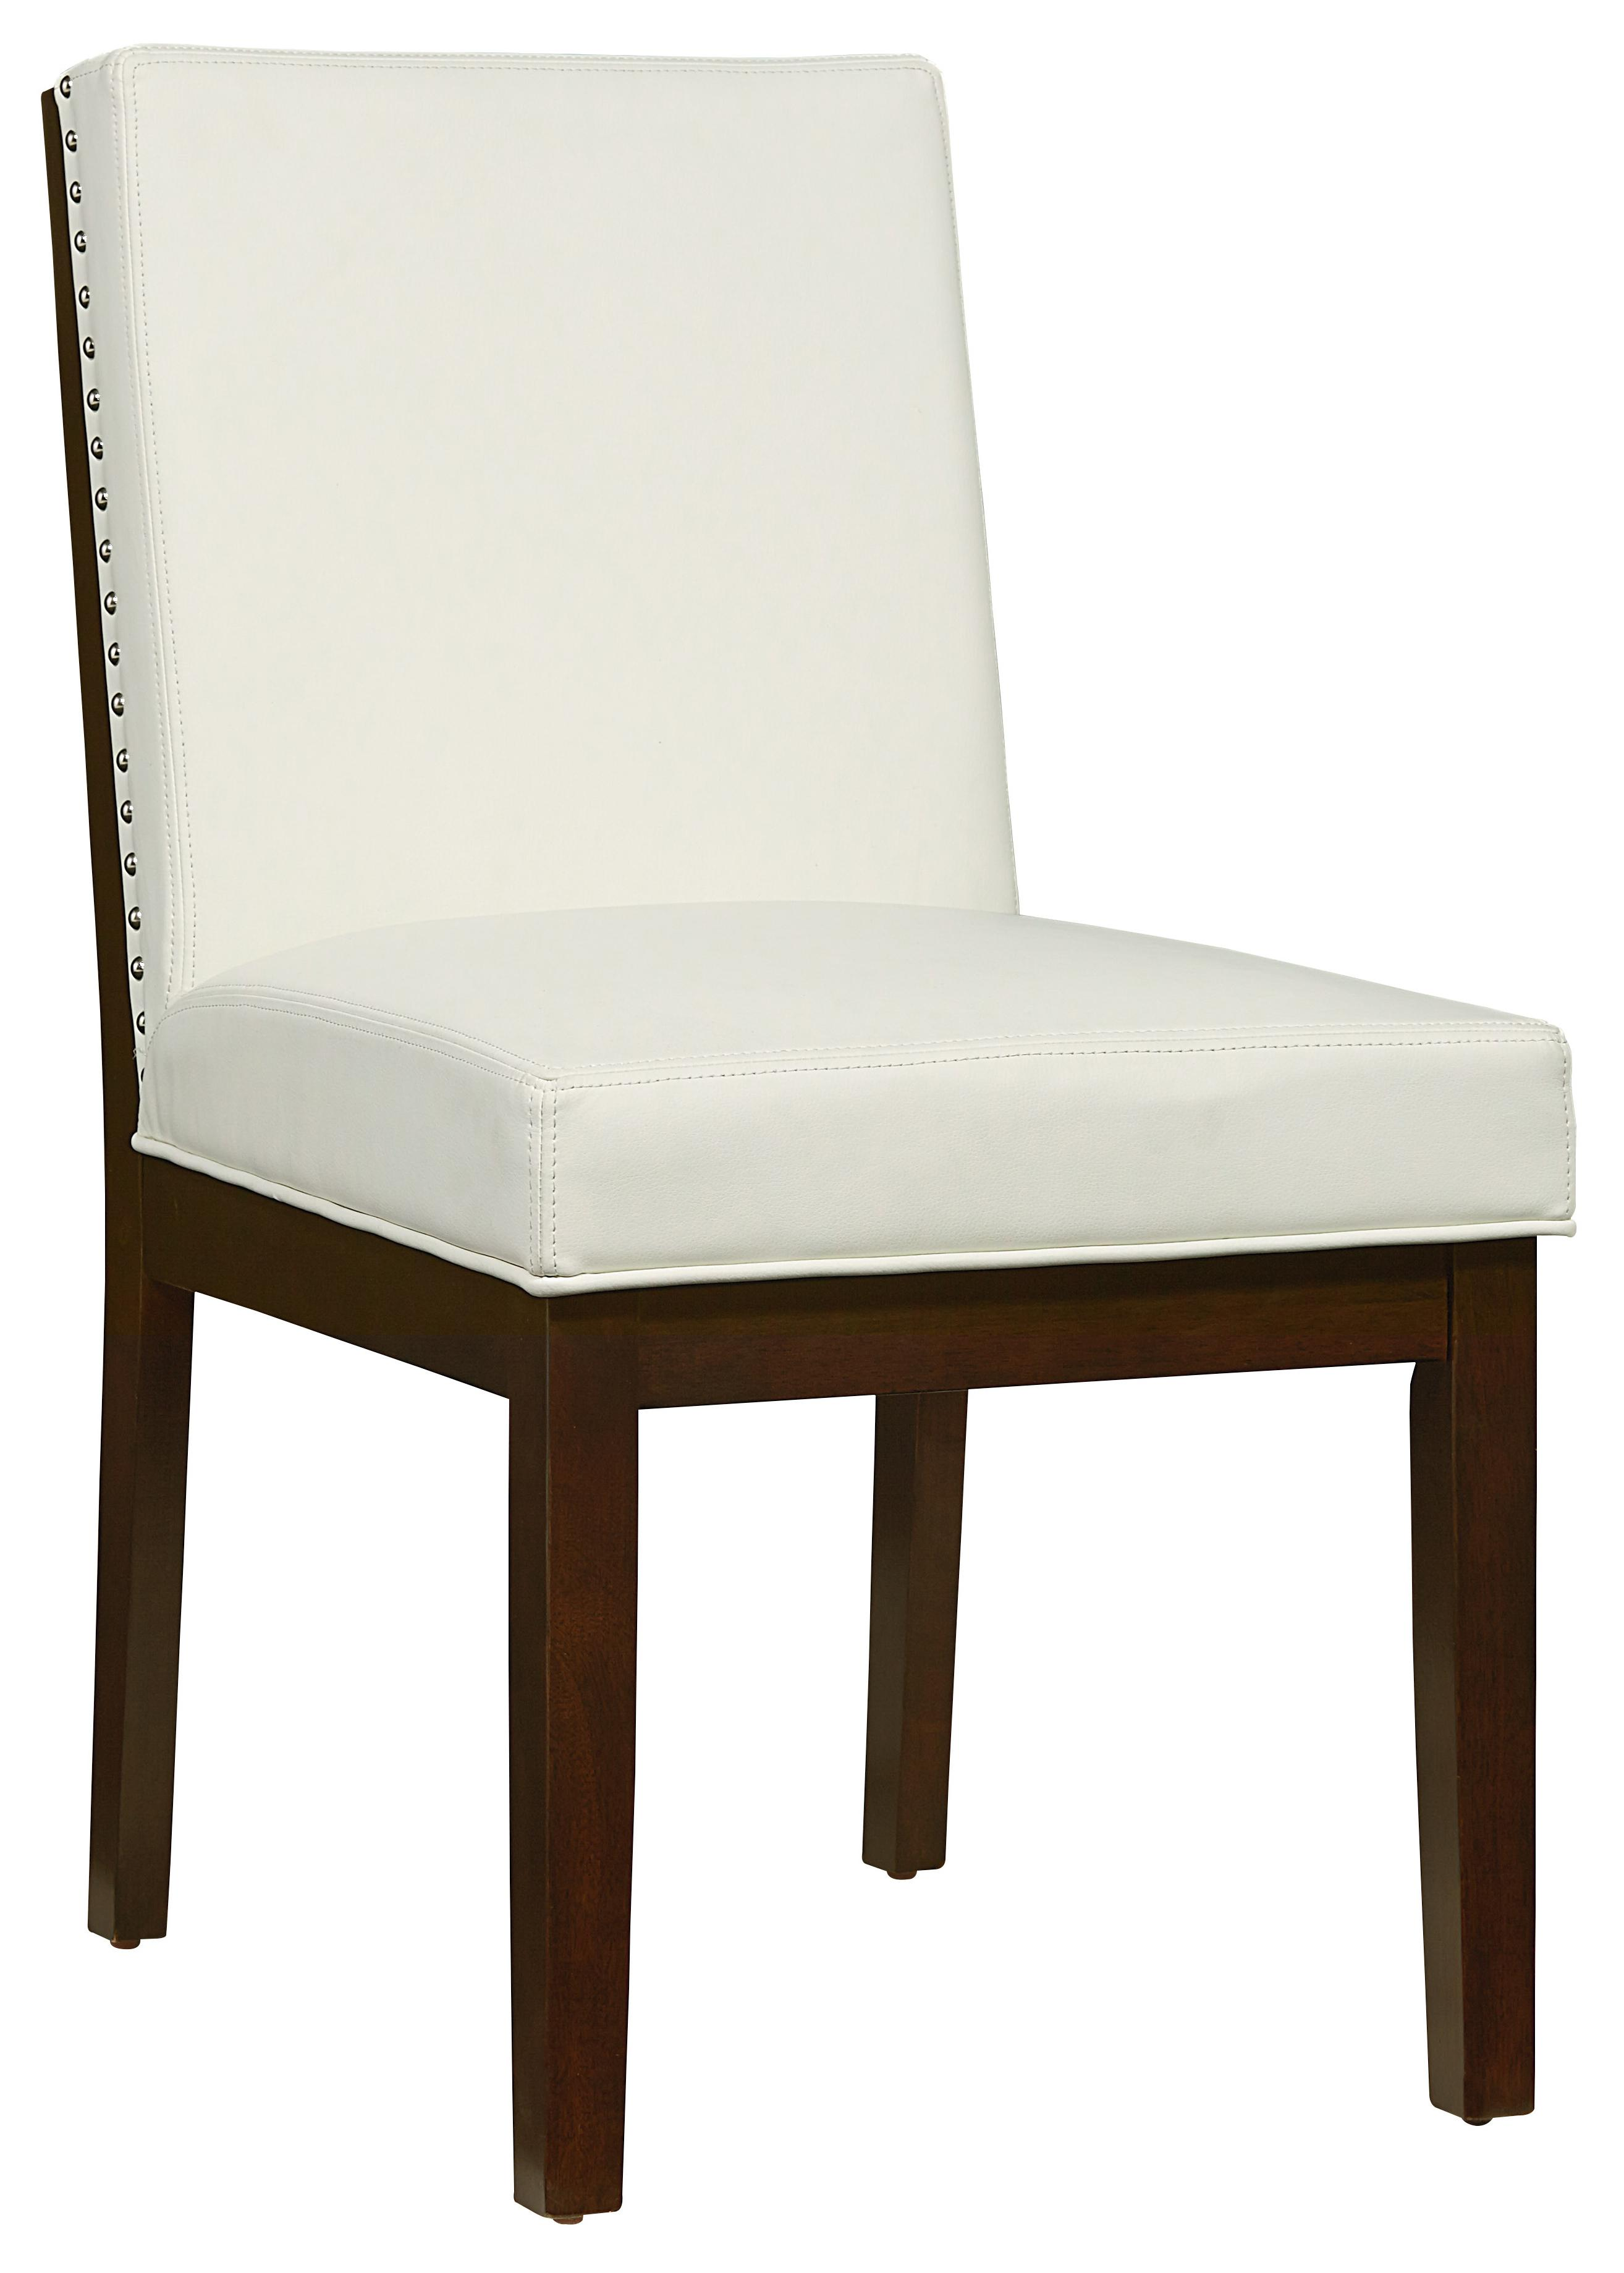 Standard Furniture Couture Elegance Upholstered Side Chair - Item Number: 10564